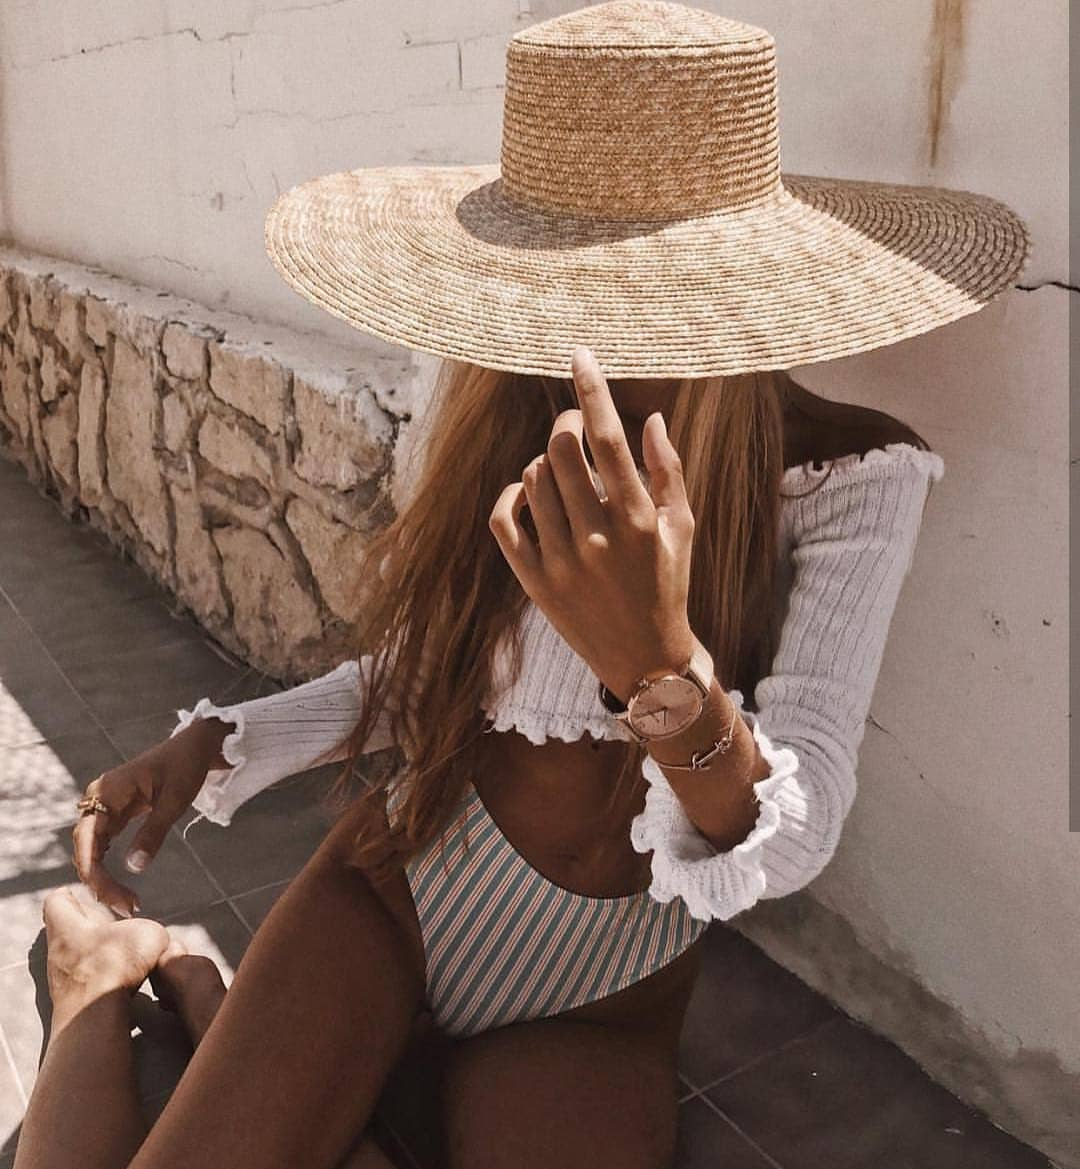 White Off Shoulder Knitted Crop Top With Long Sleeves For Summer Vacation 2019